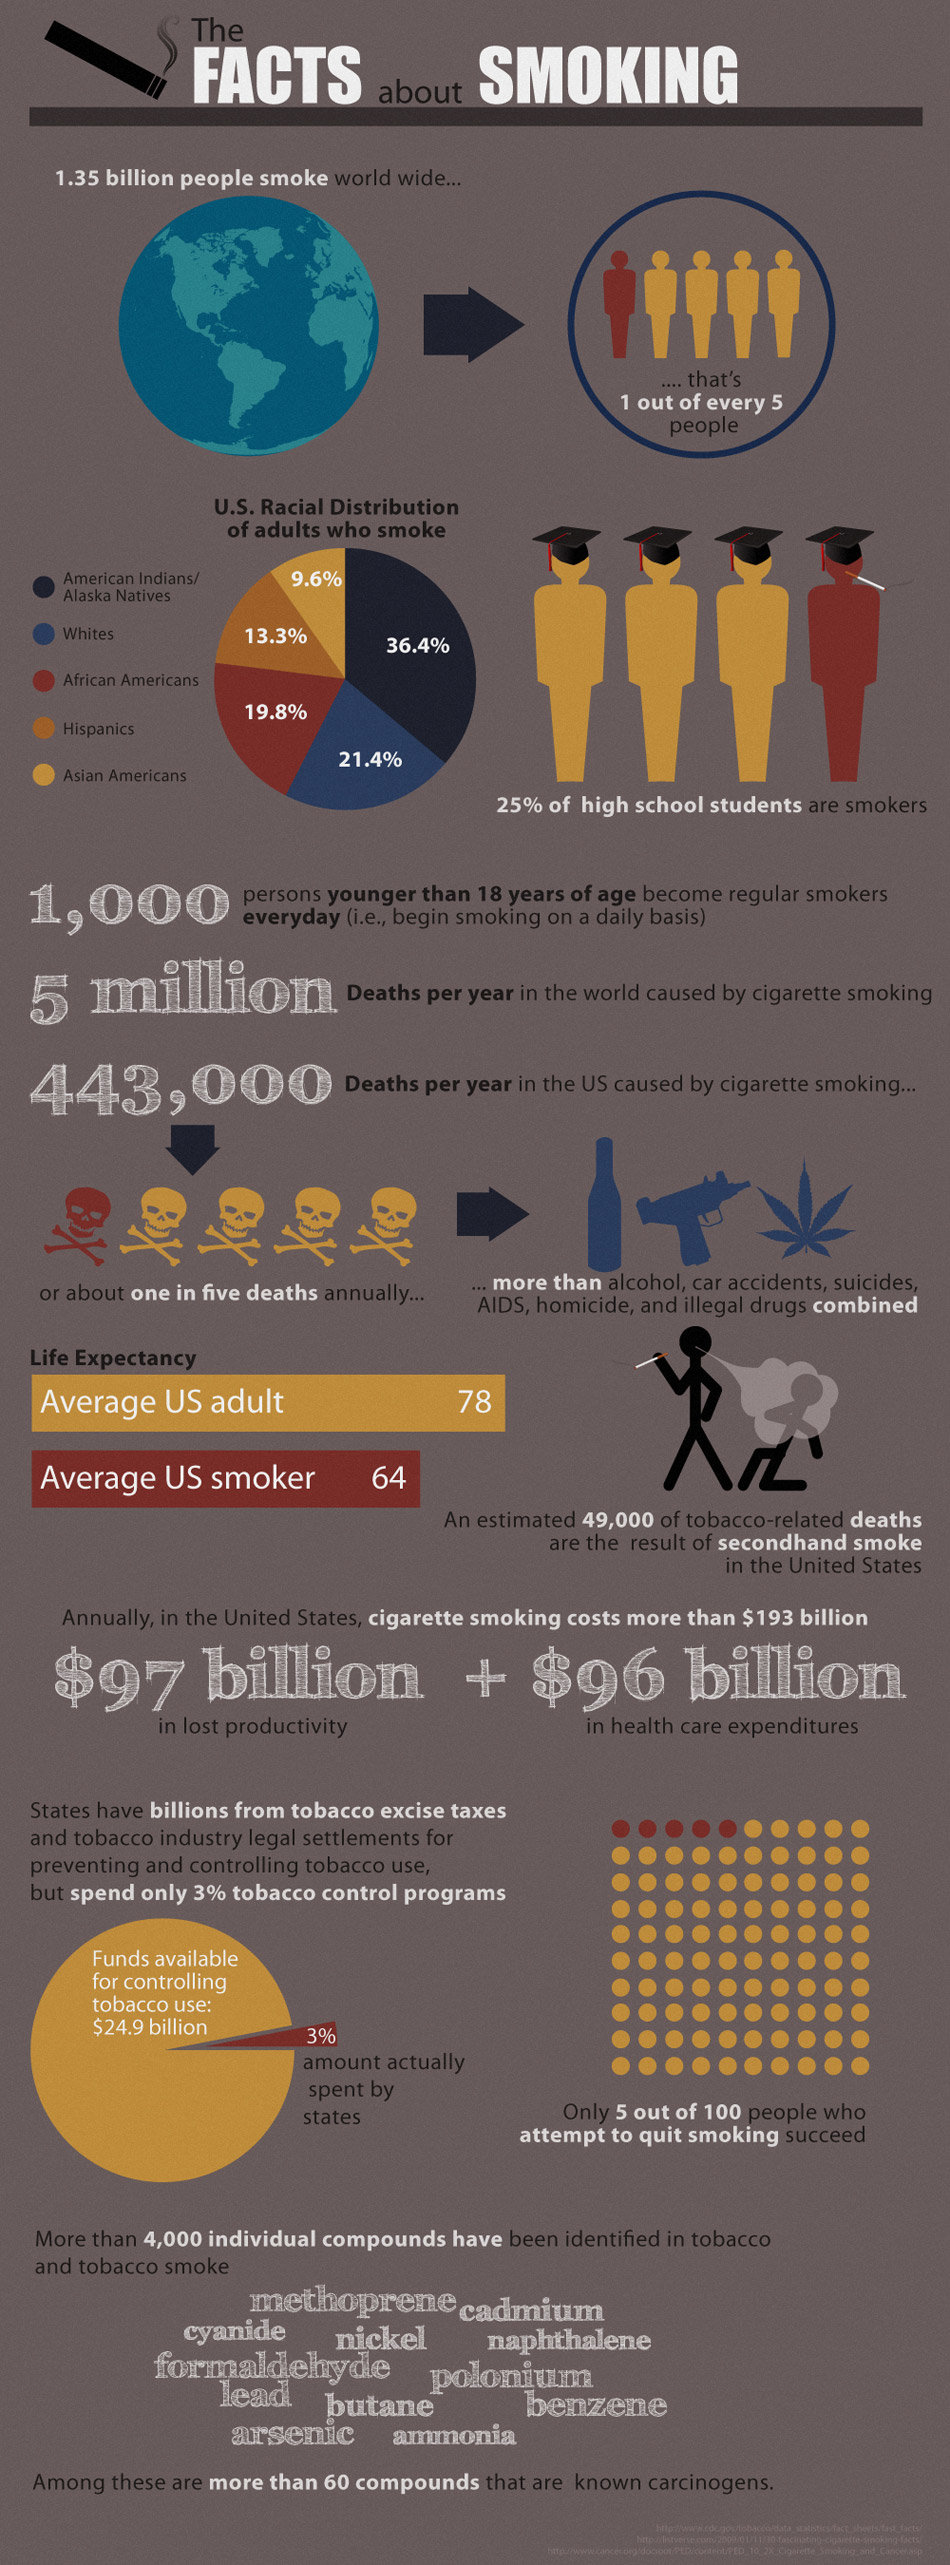 cig - the facts about smoking